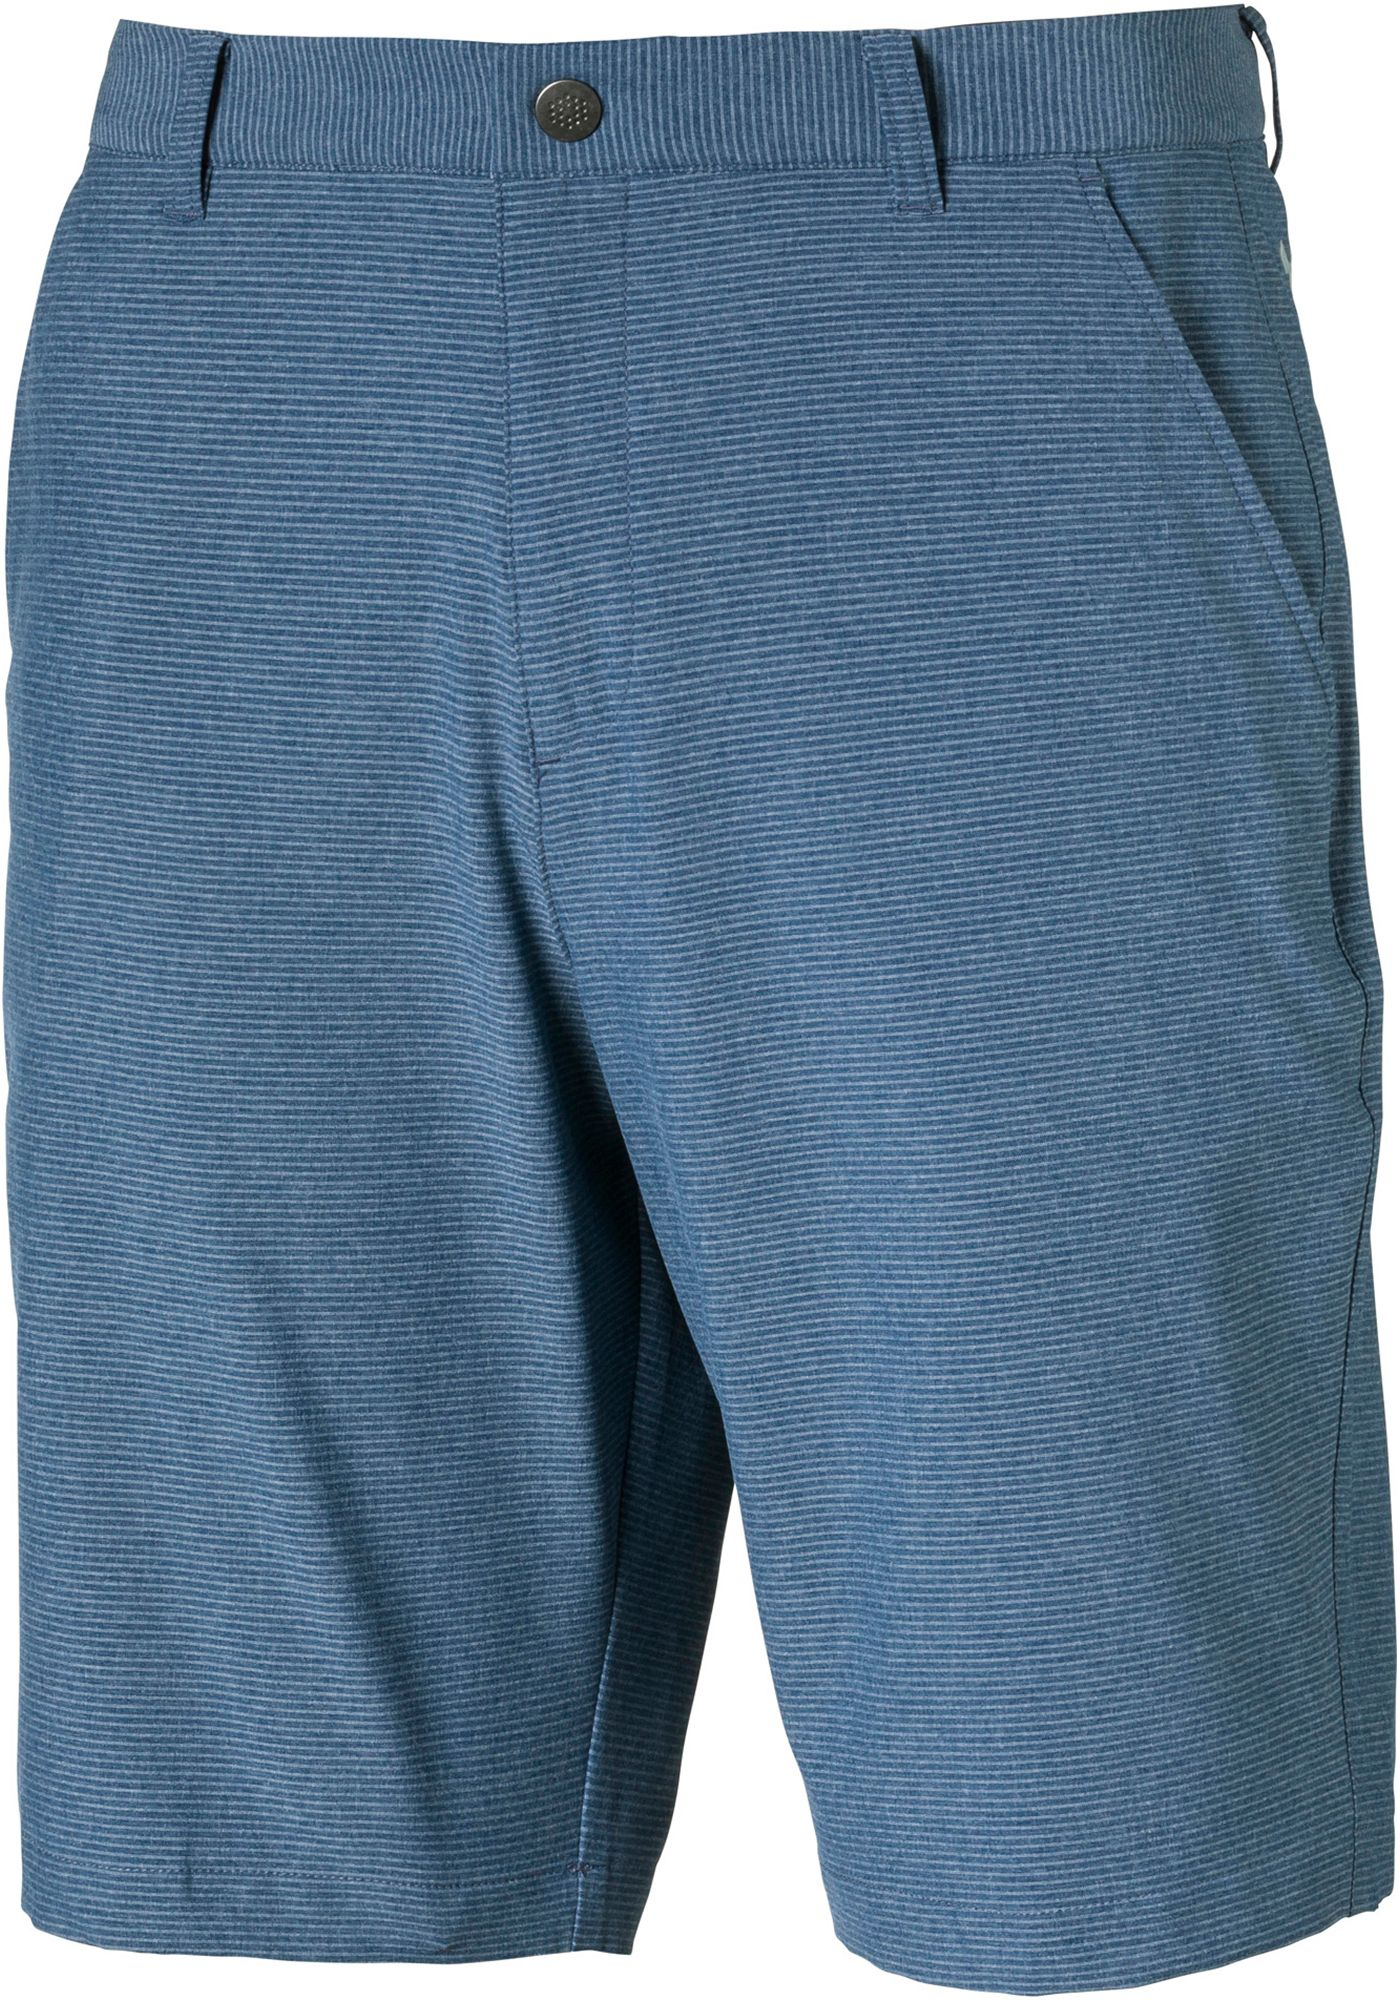 PUMA Men's Marshal Golf Shorts